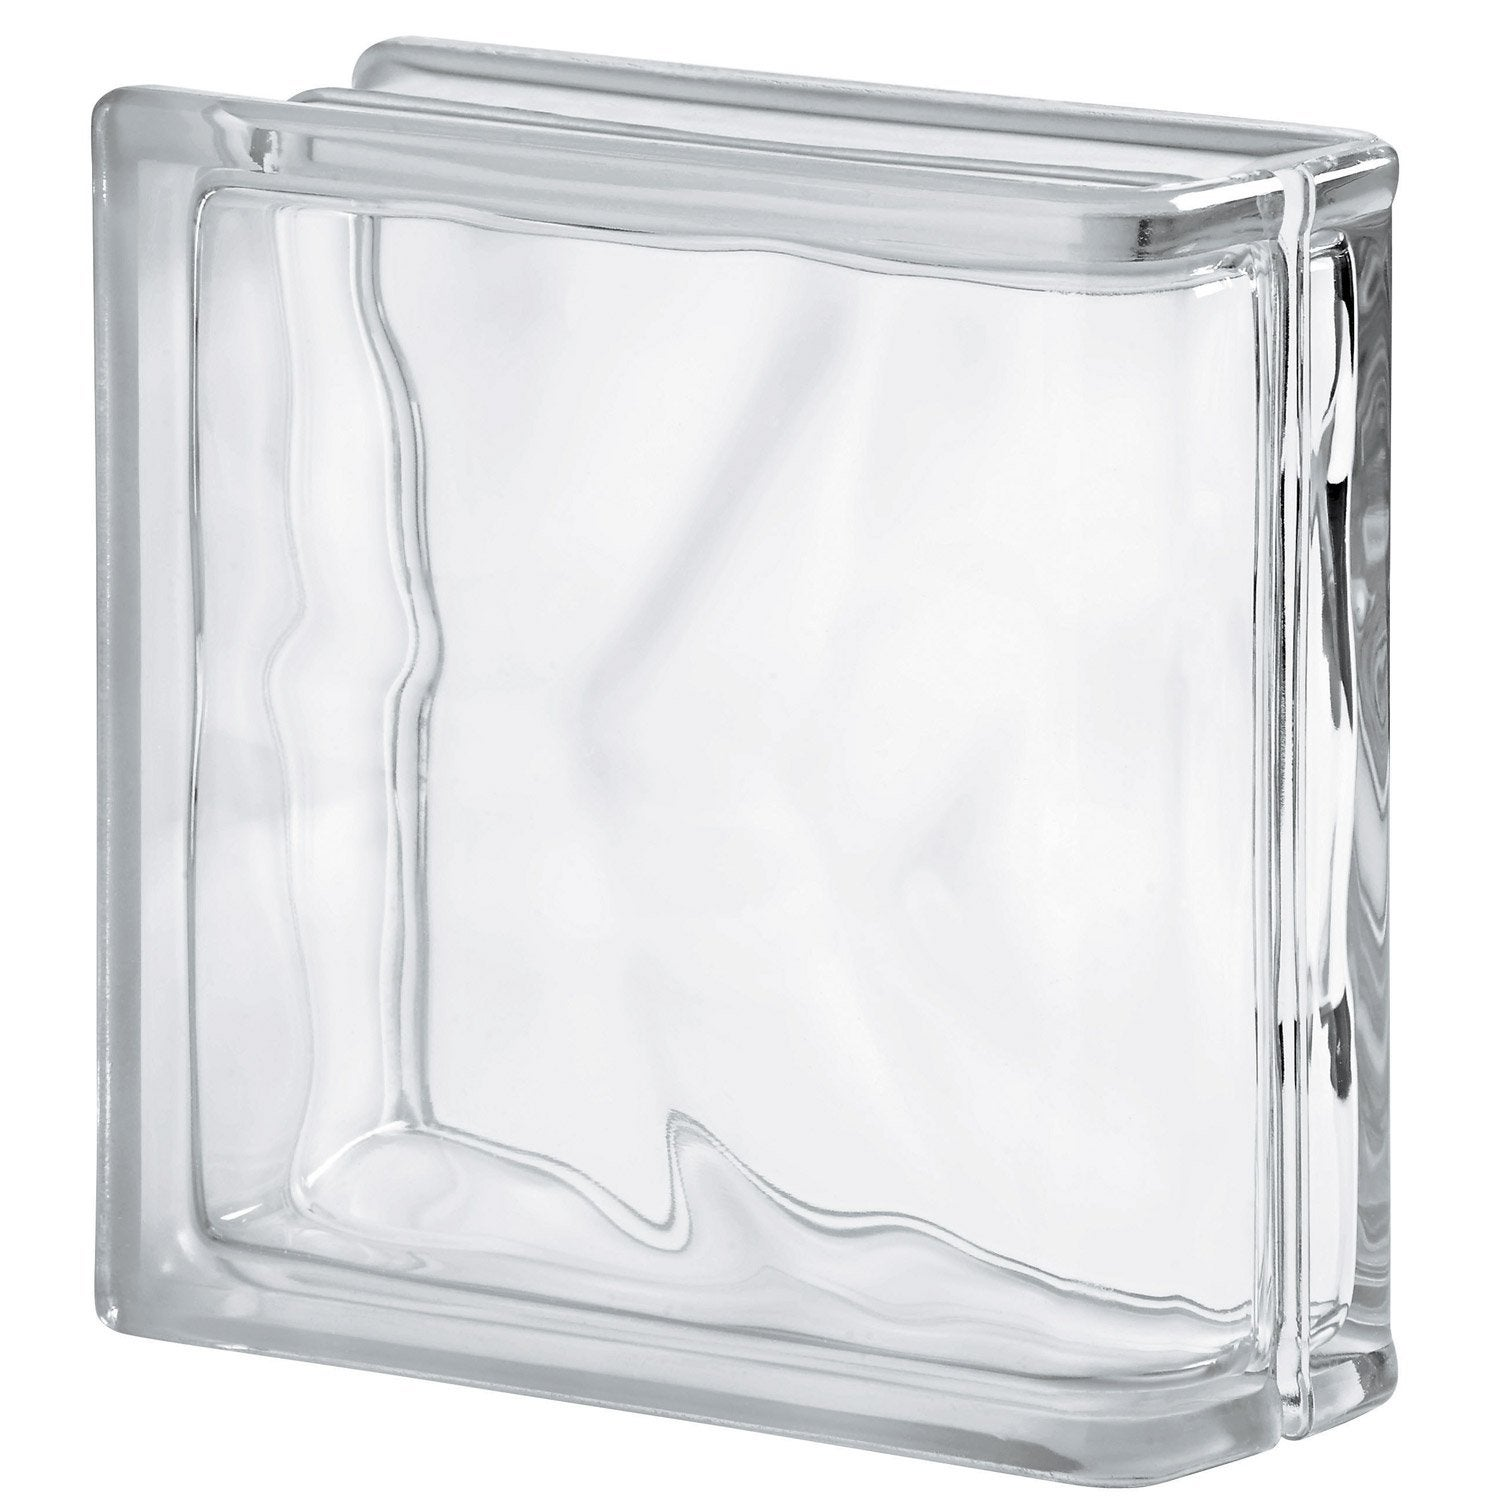 Brique de verre transparent ondul brillant leroy merlin for Pose carreau de verre exterieur